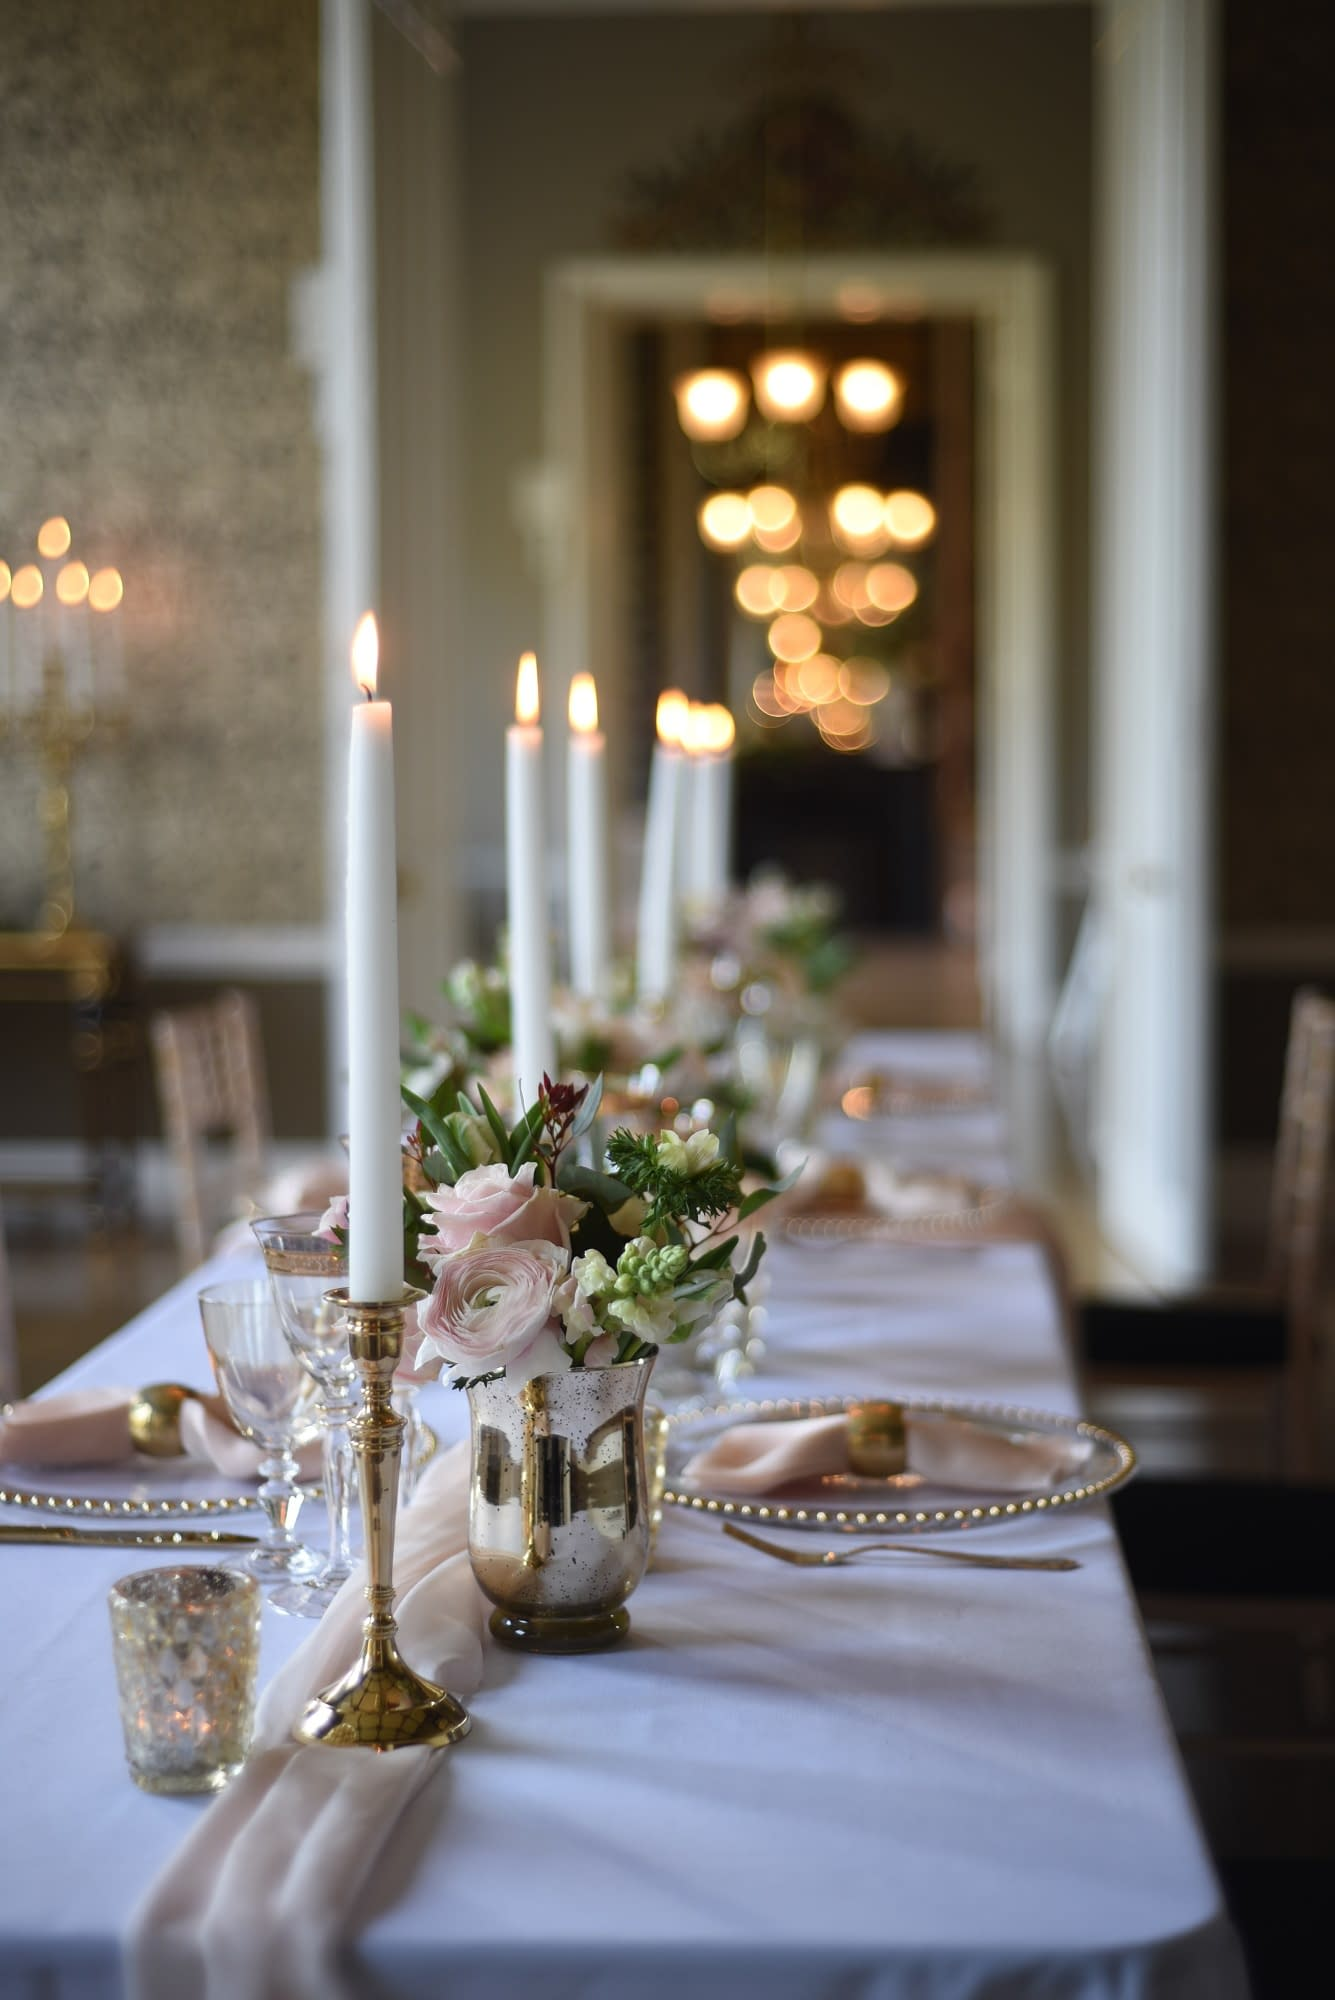 Brass table candlesticks at an elegant wedding at Nonsuch Mansion, UK wedding venue